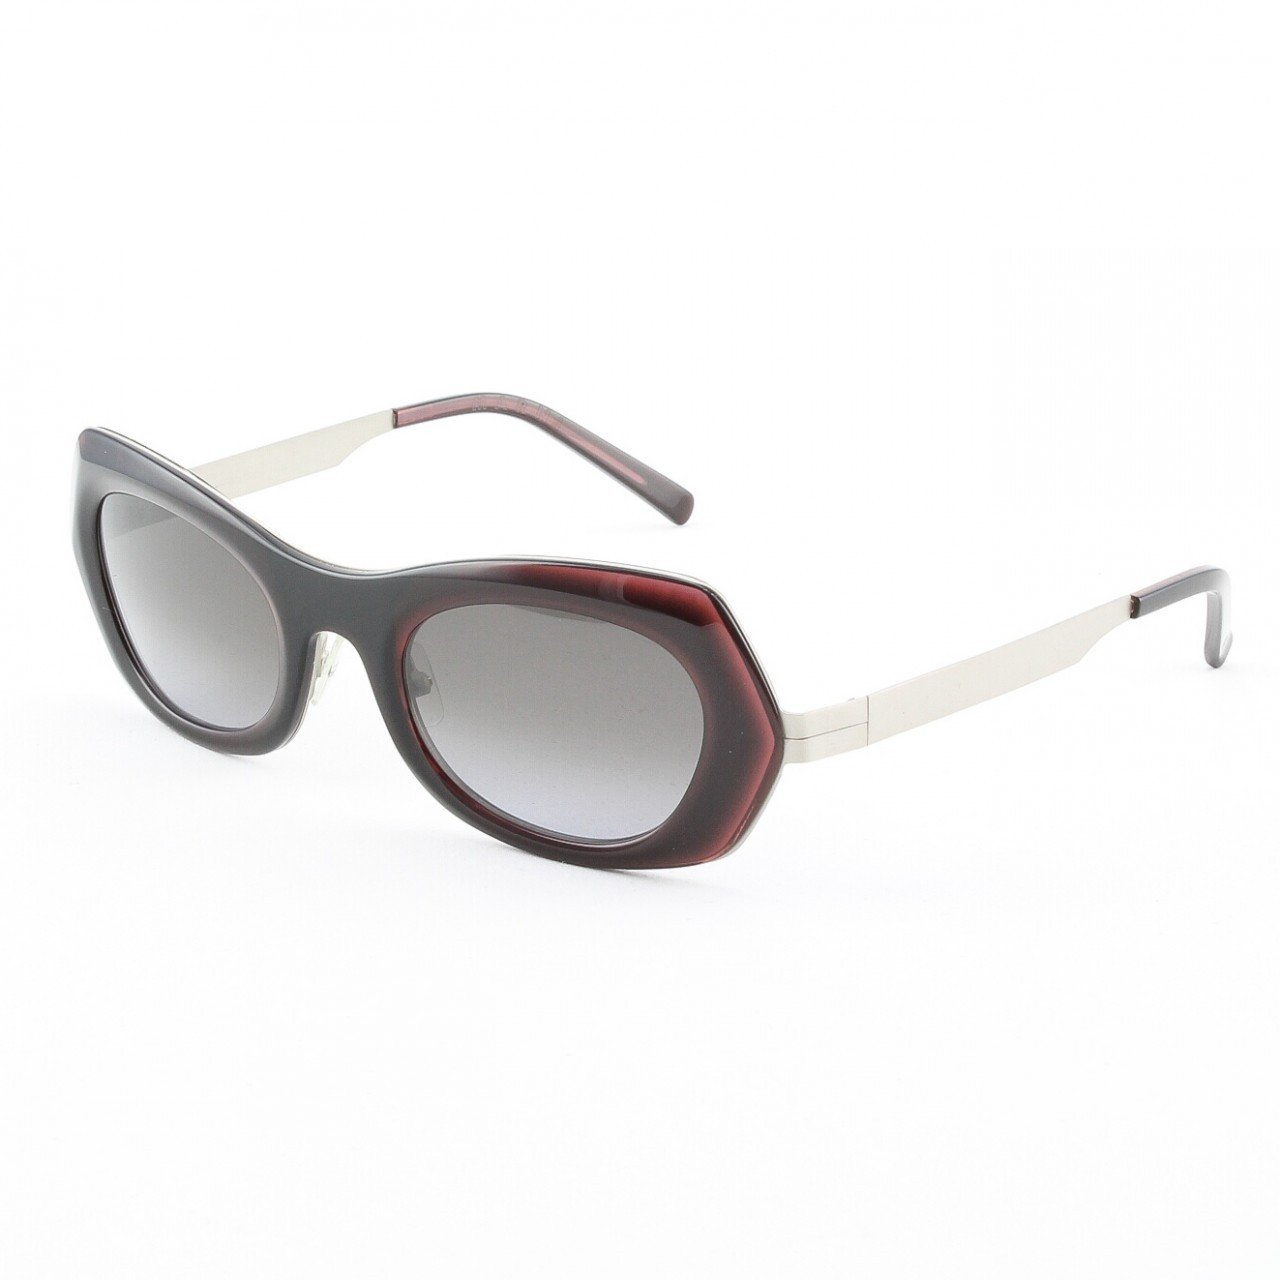 Marni MA188S Sunglasses Col. 03 Black w/ Deep Burgundy Accent with Gradient Gray Lenses